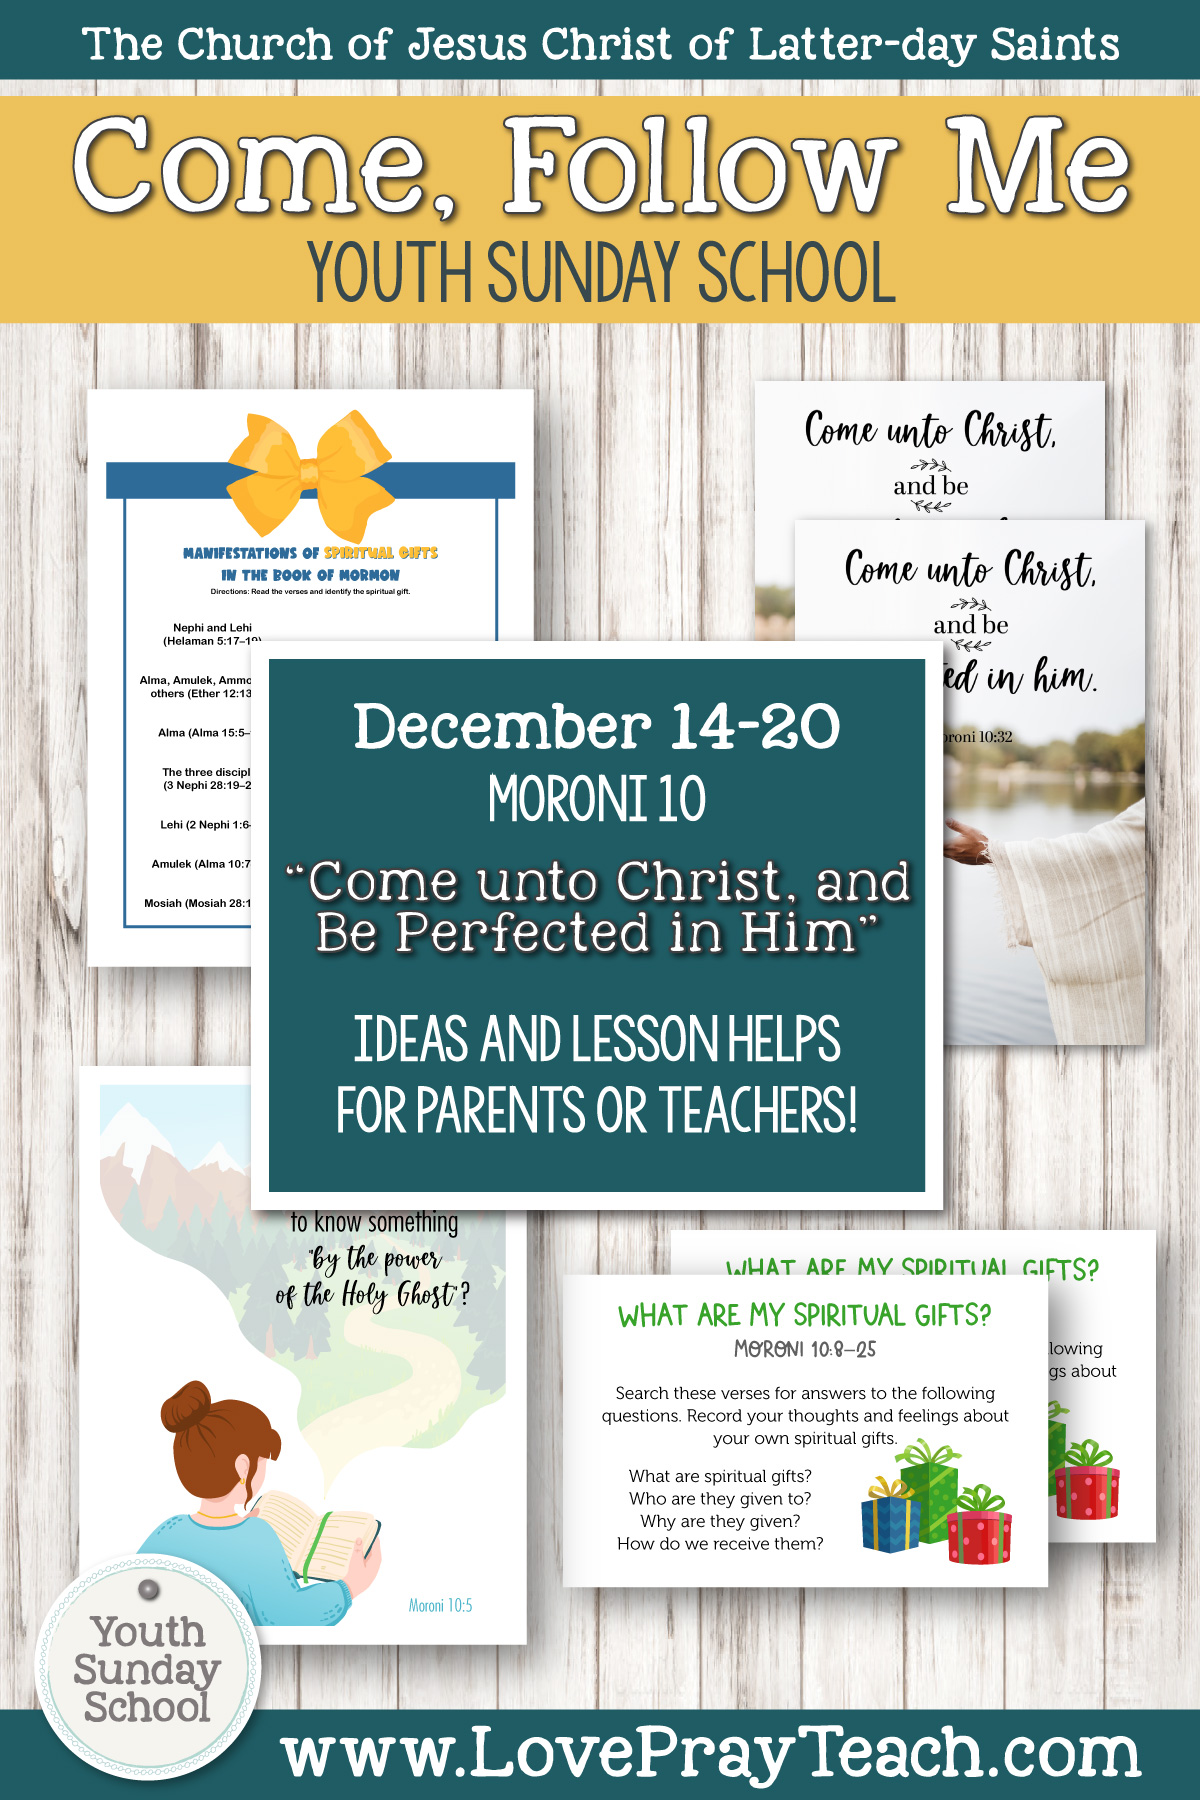 """Youth Sunday School Come, Follow Me Book of Mormon 2020 December 14–20 Moroni 10 """"Come unto Christ, and Be Perfected in Him"""" Printable Lesson Packet for Latter-day Saints for Parents AND Teachers"""